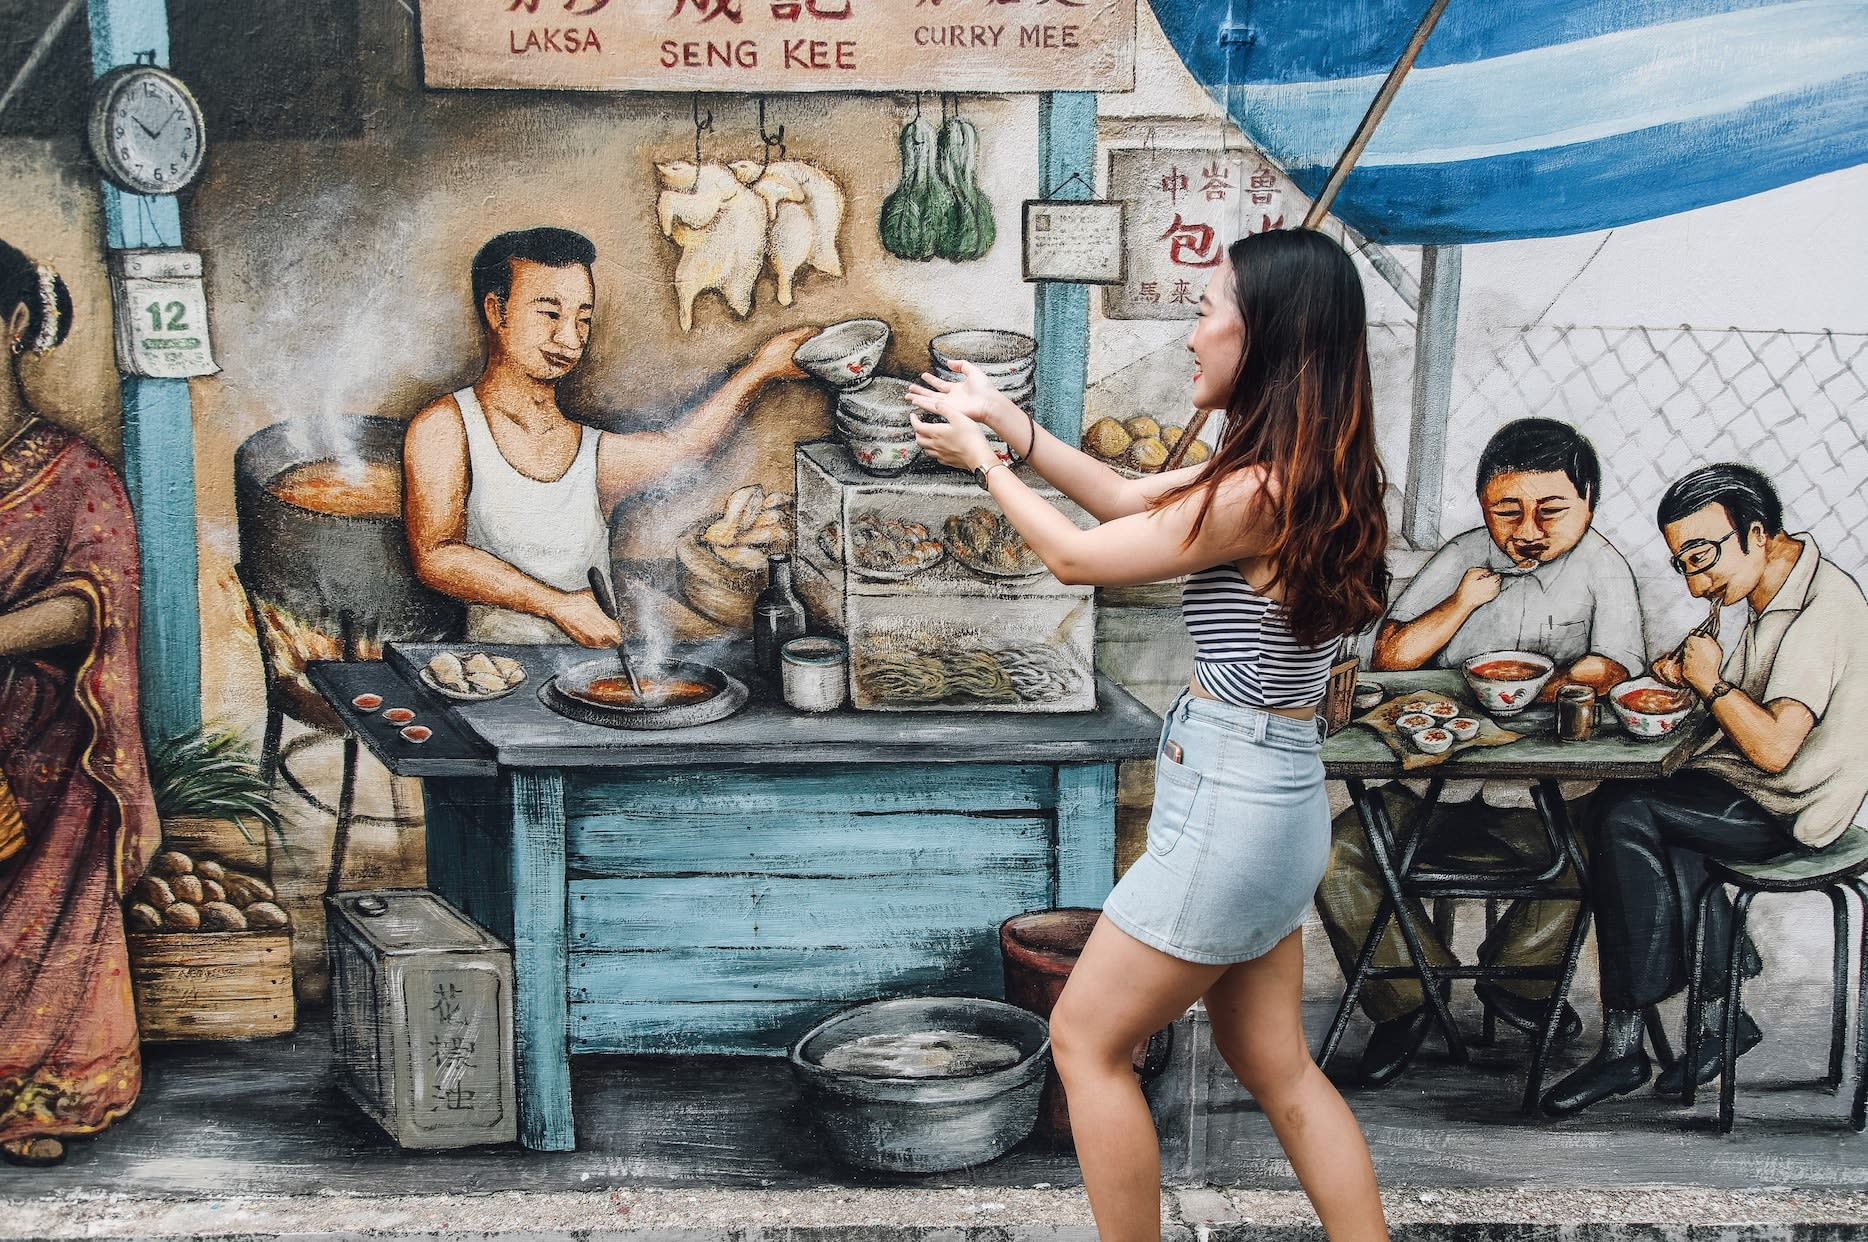 Tiong Bahru murals, pasar and the fortune teller